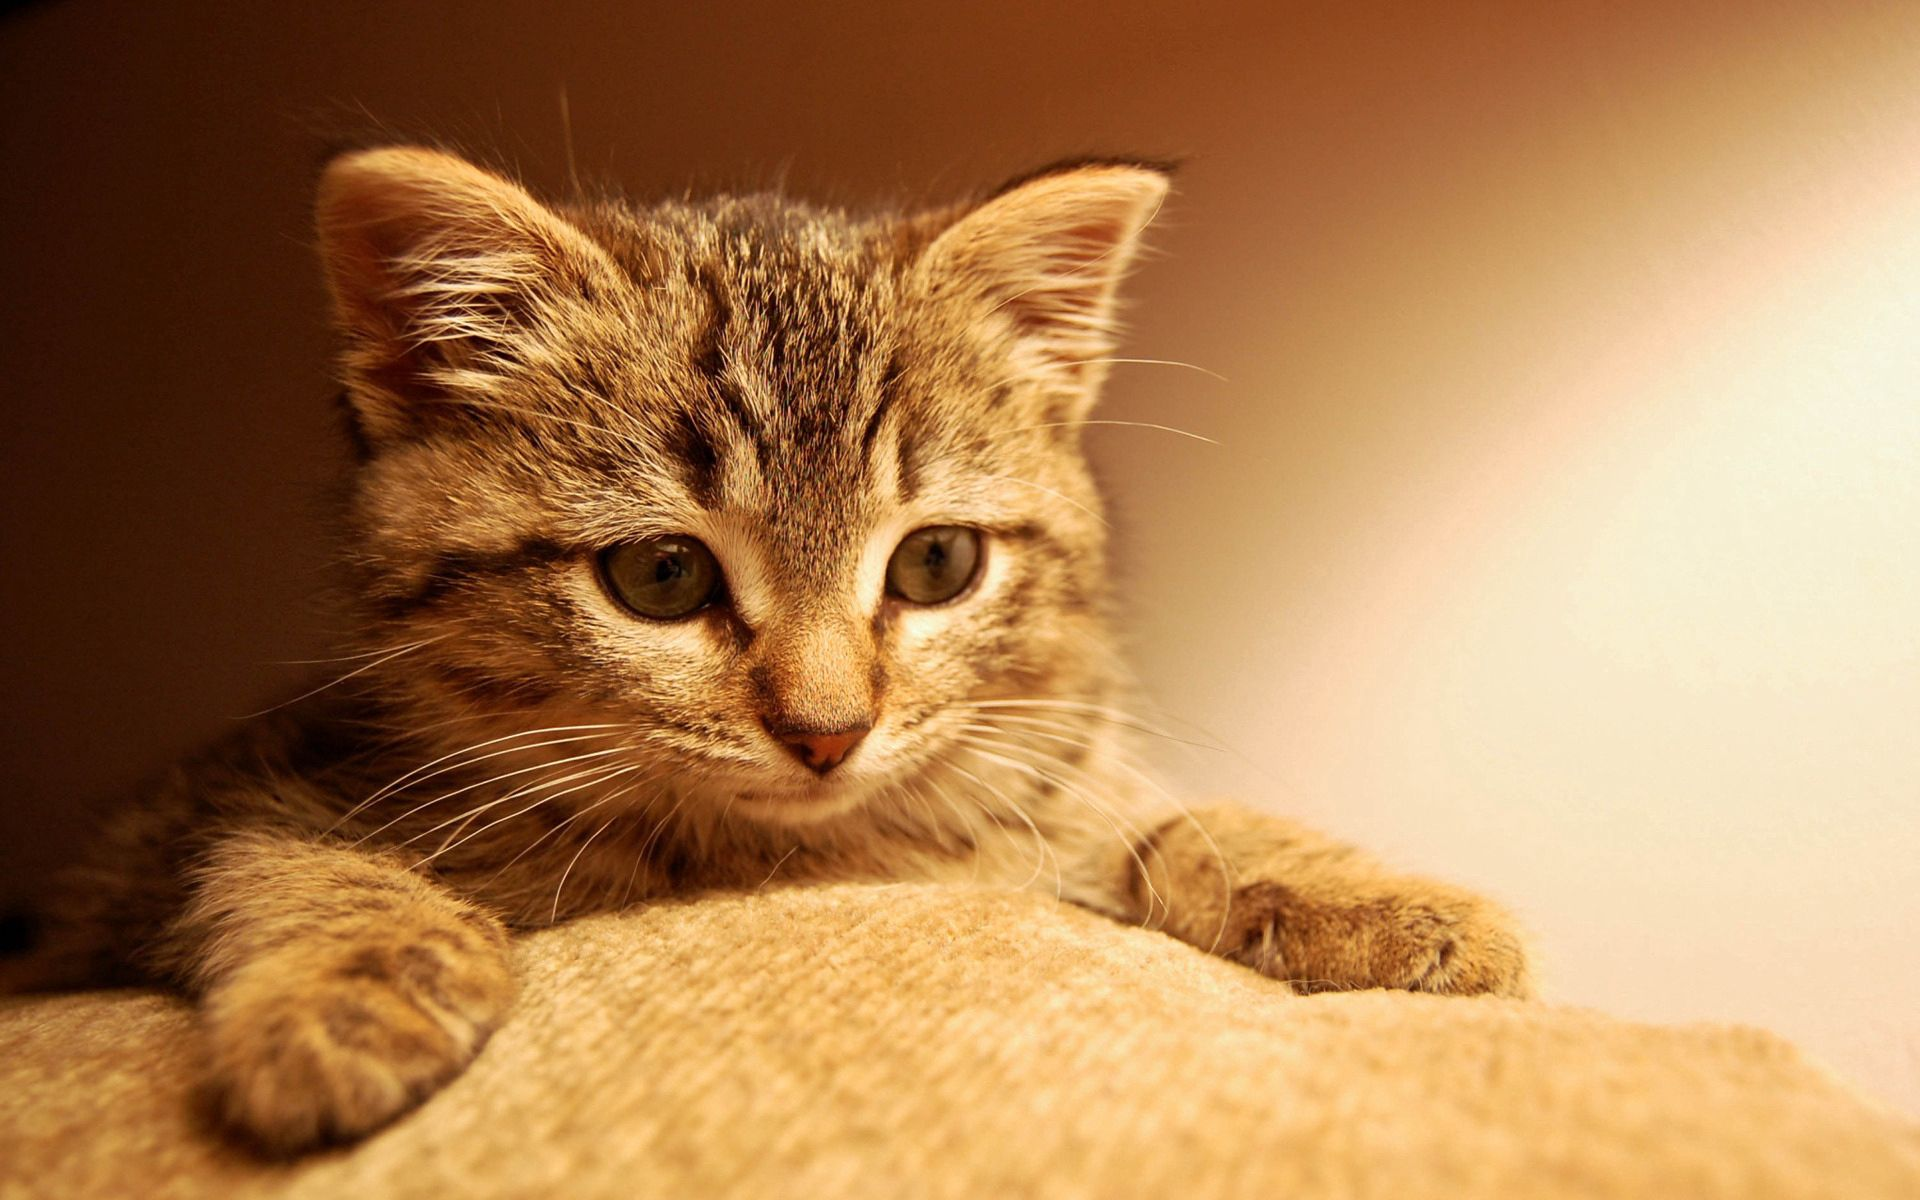 84059 download wallpaper Animals, Cat, Kitty, Kitten, Paw, Muzzle, Eyes, Striped screensavers and pictures for free